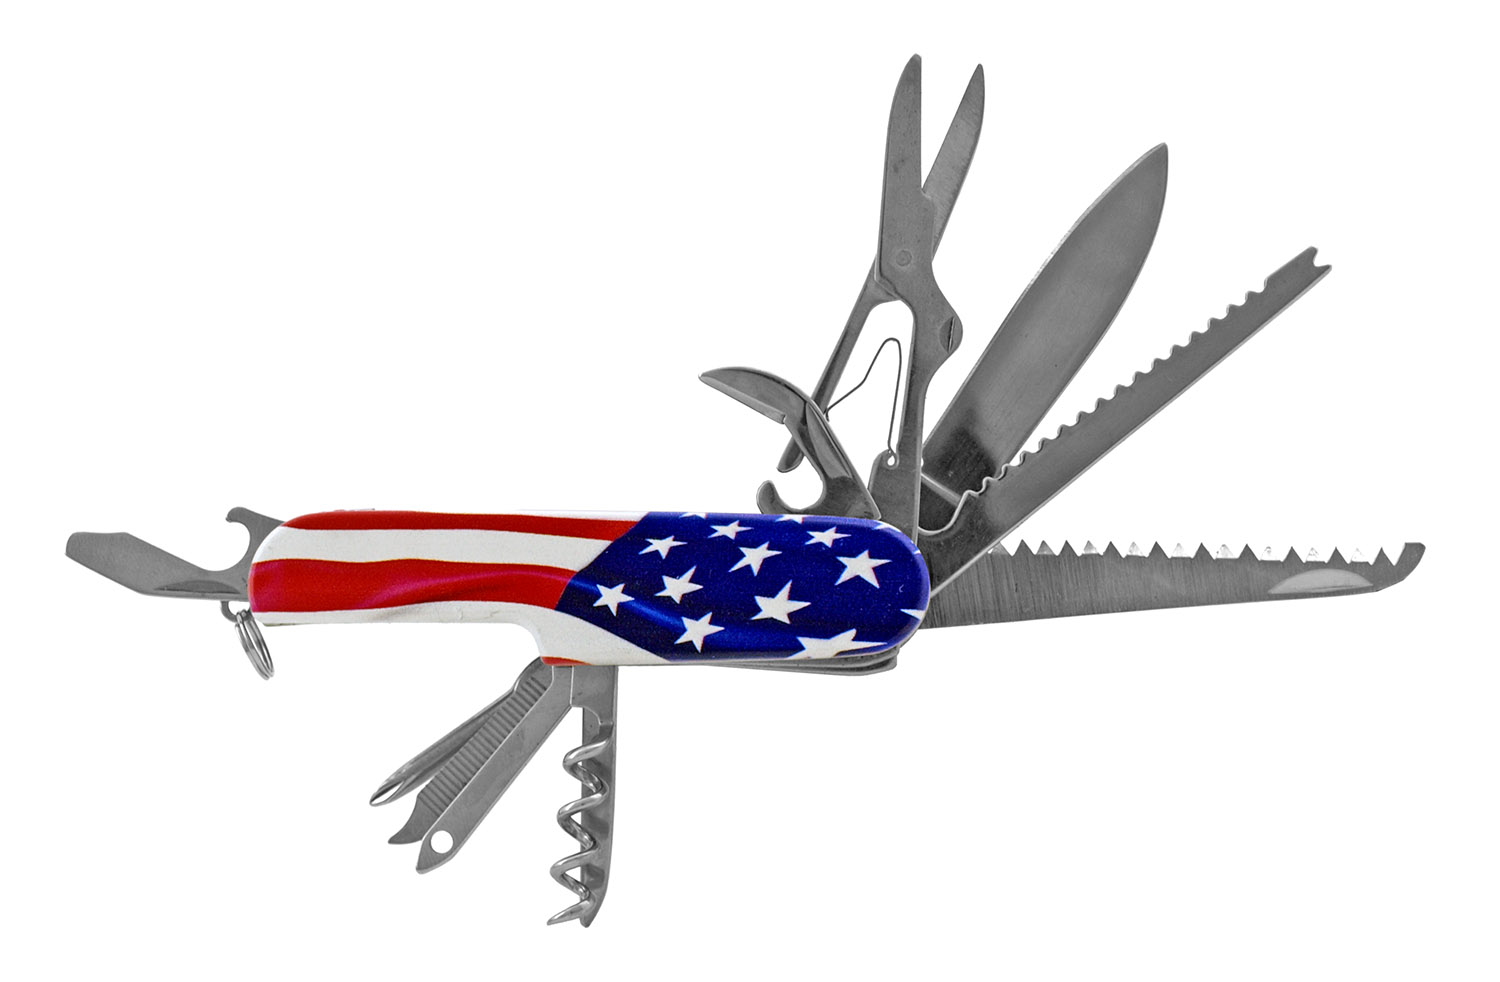 3.5 in Utility Swiss Army Style Folding Pocket Knife - United States of America Flag